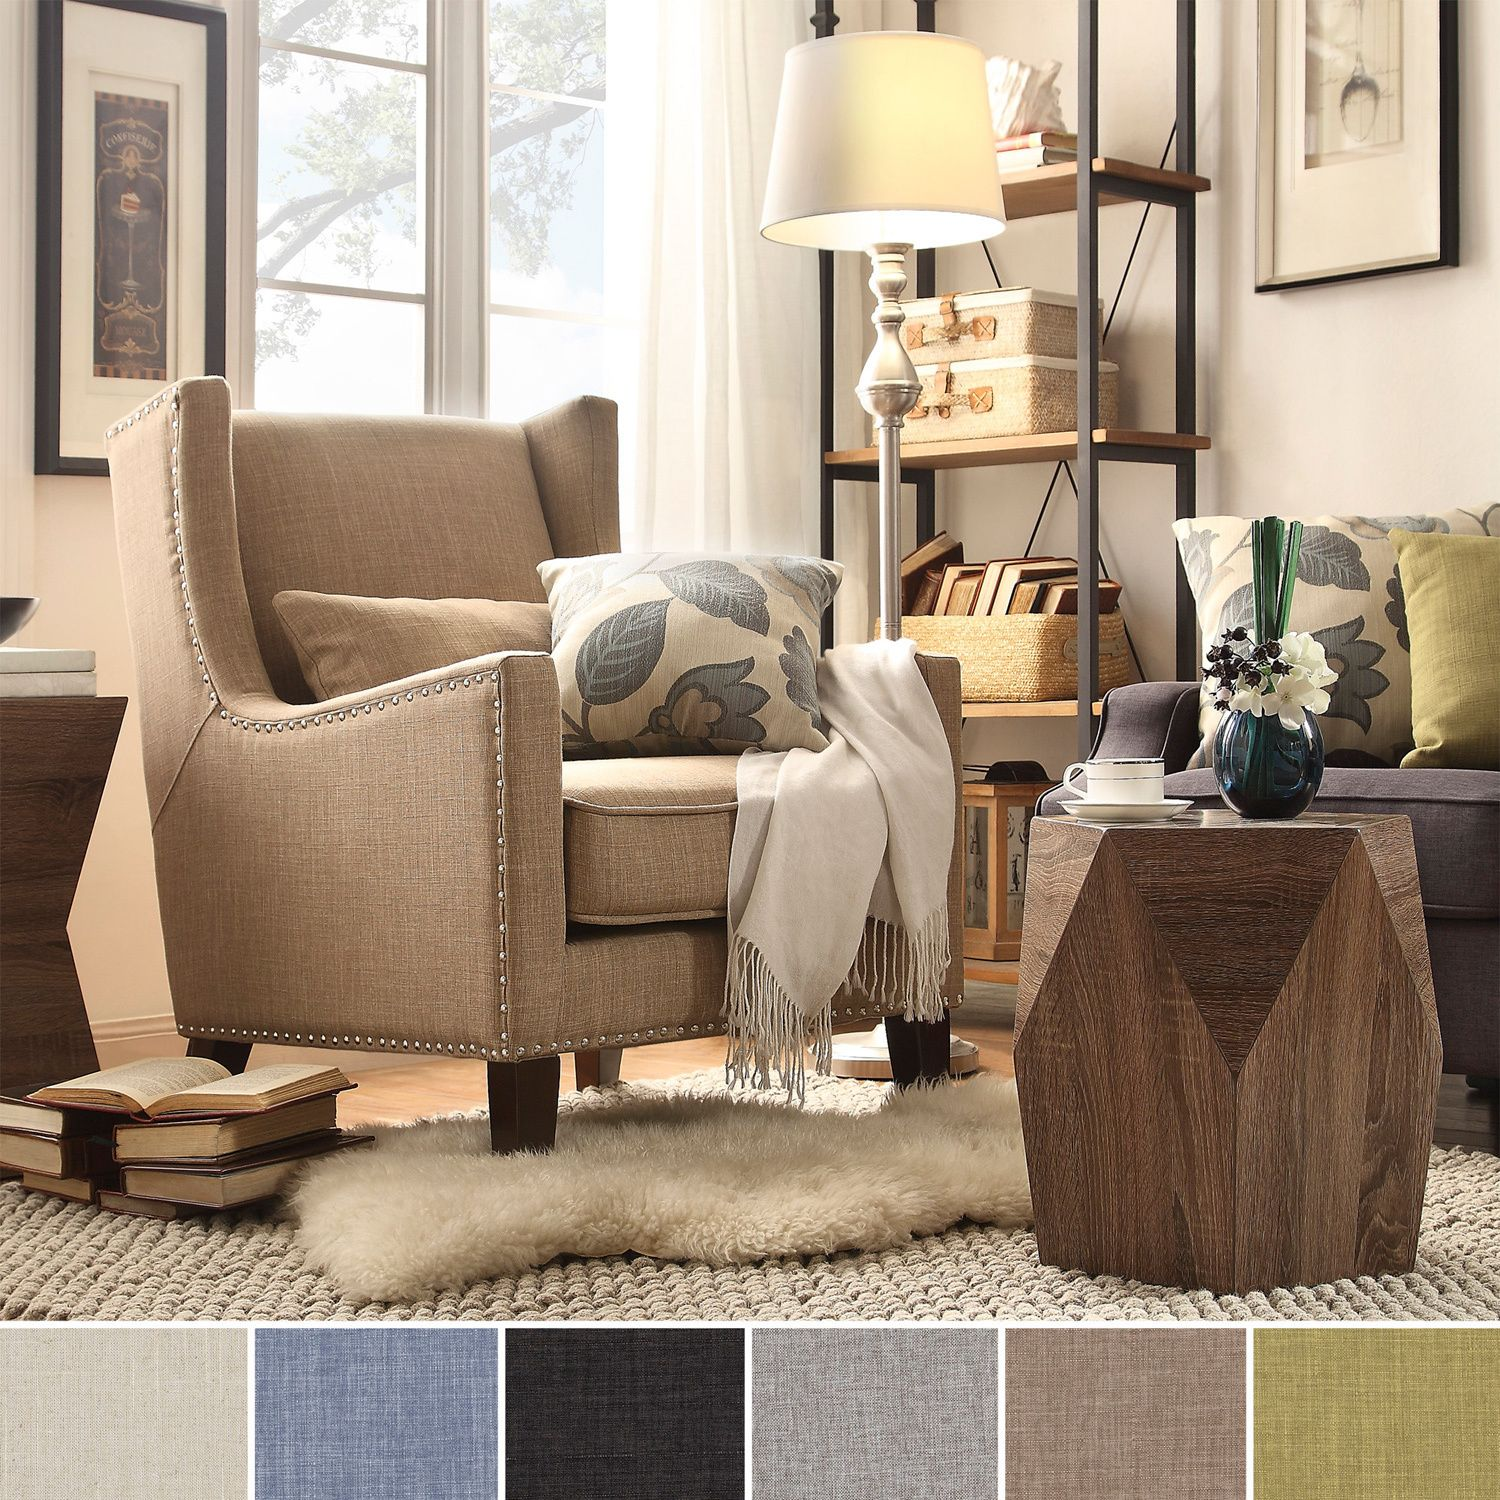 Living Room Furniture Deals: INSPIRE Q Henry Wingback Nailhead Upholstered Club Chair